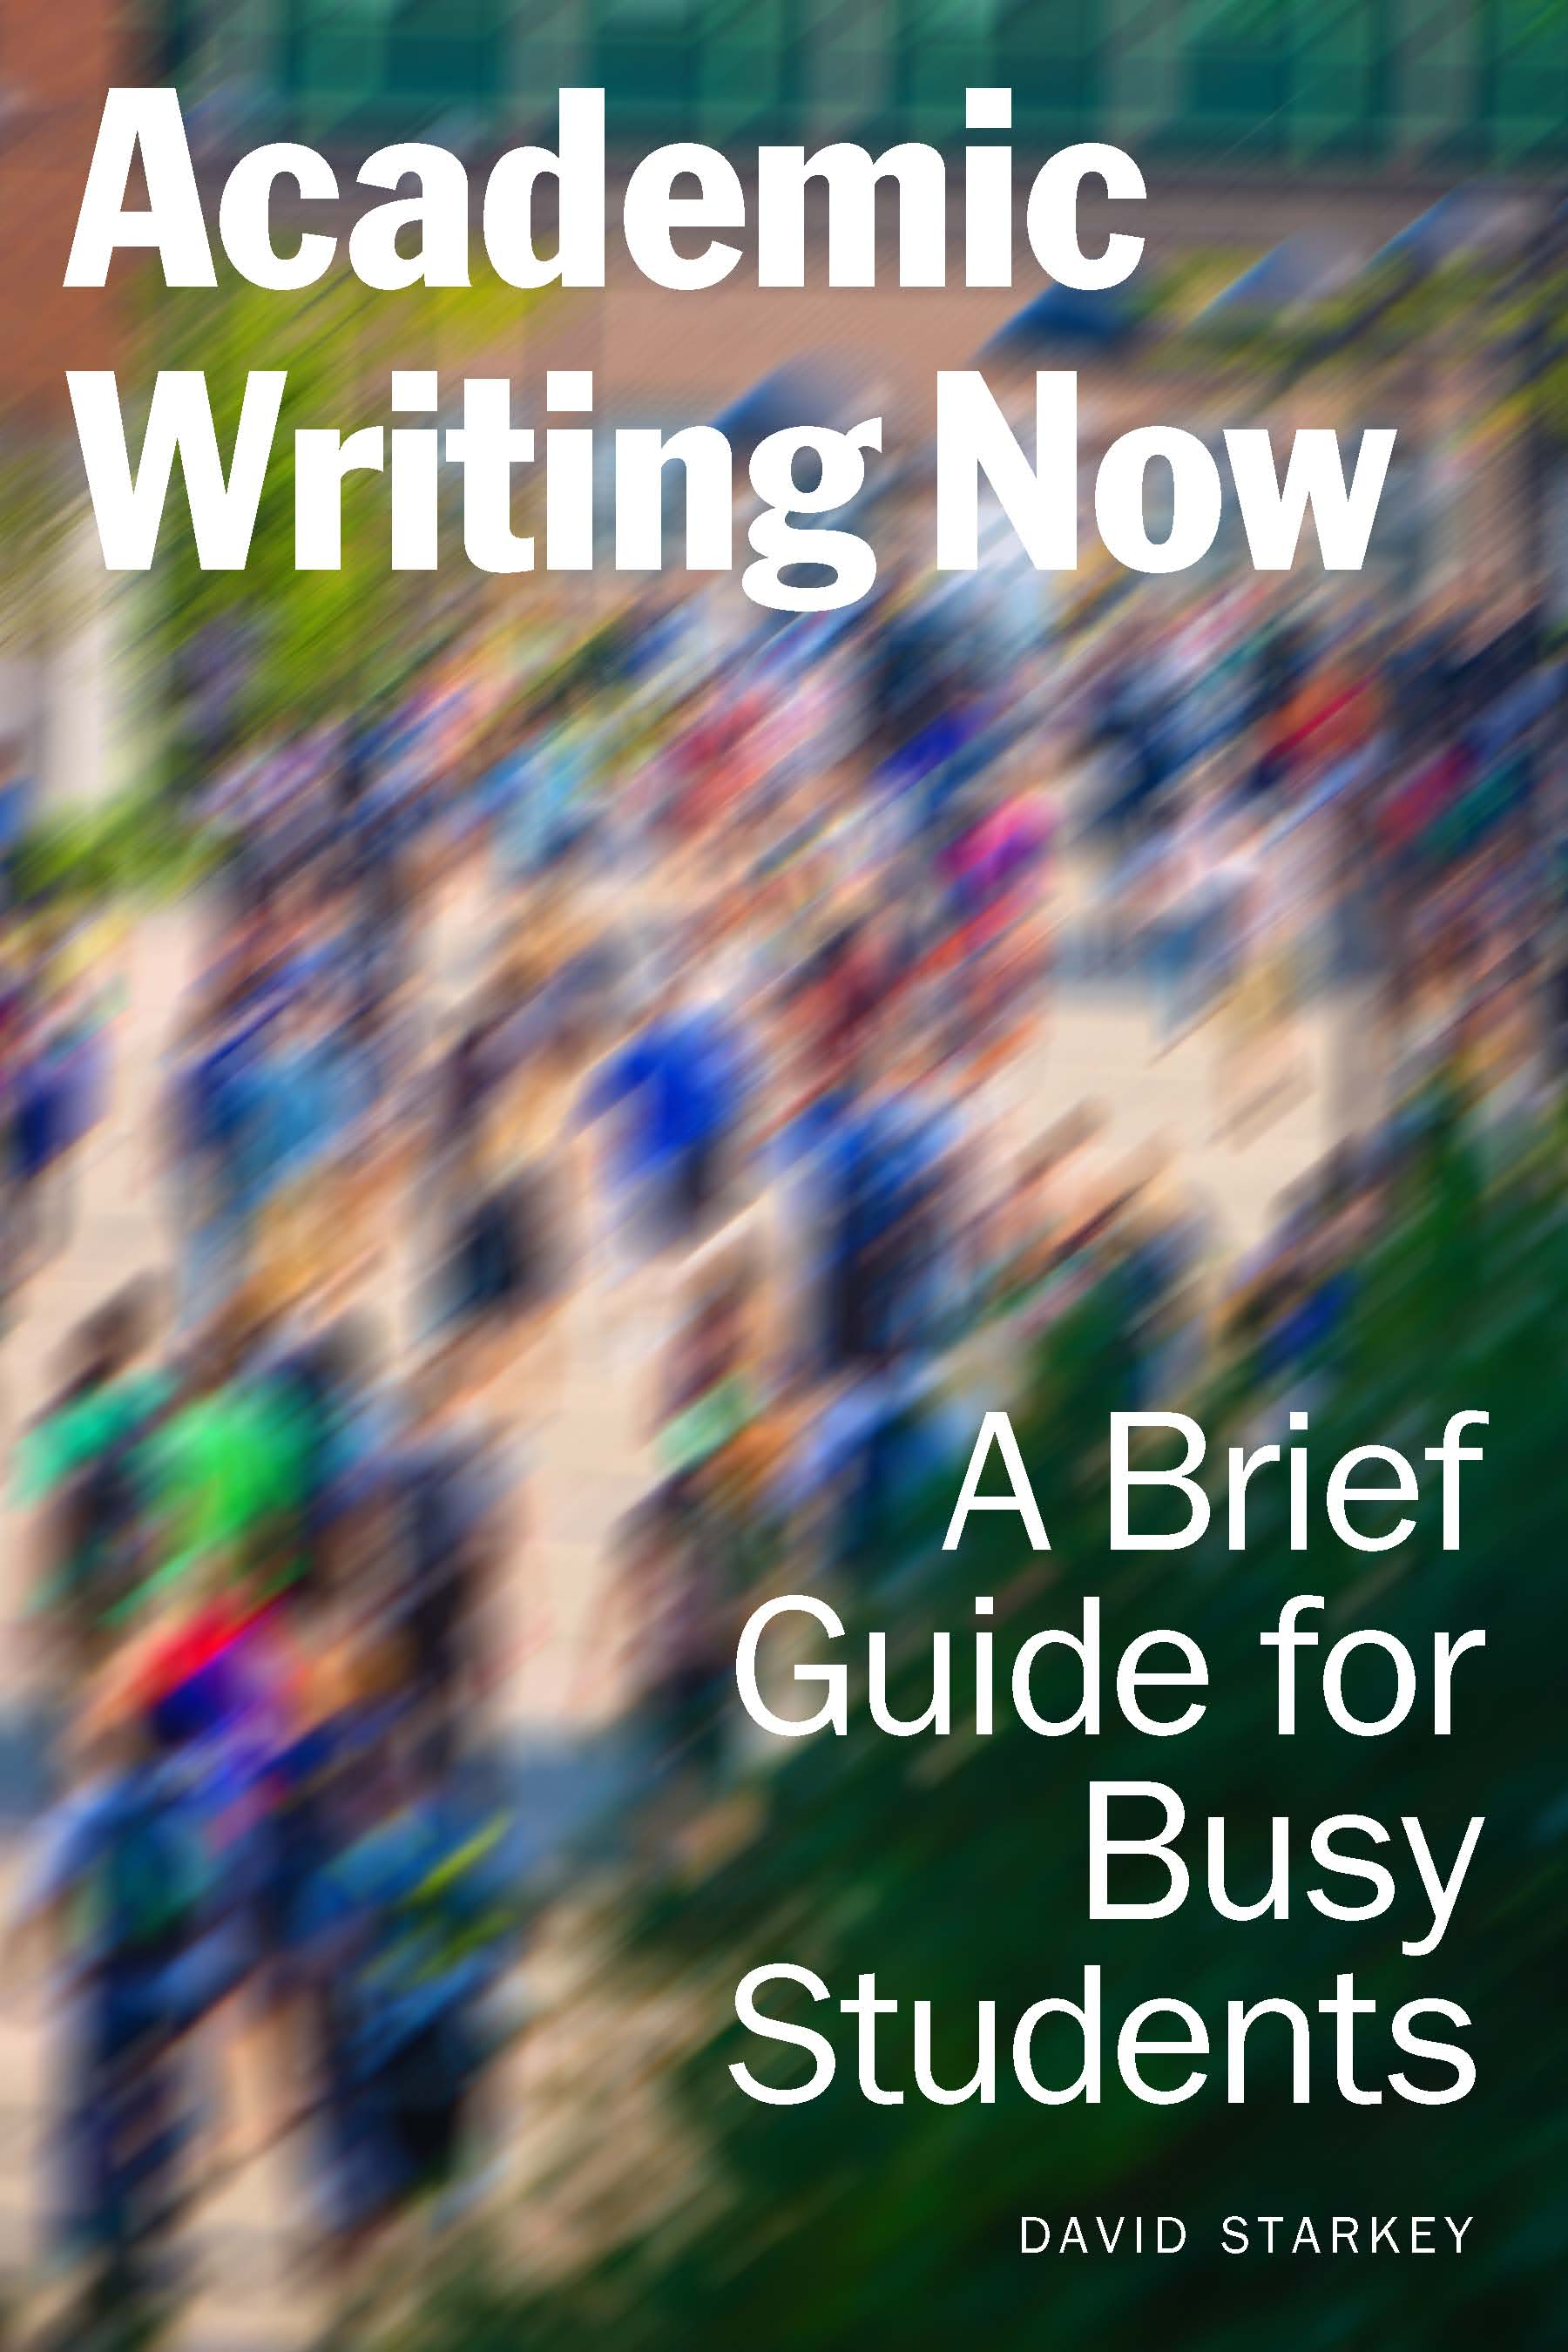 academic writing now a brief guide for busy students broadview academic writing now a brief guide for busy students broadview press